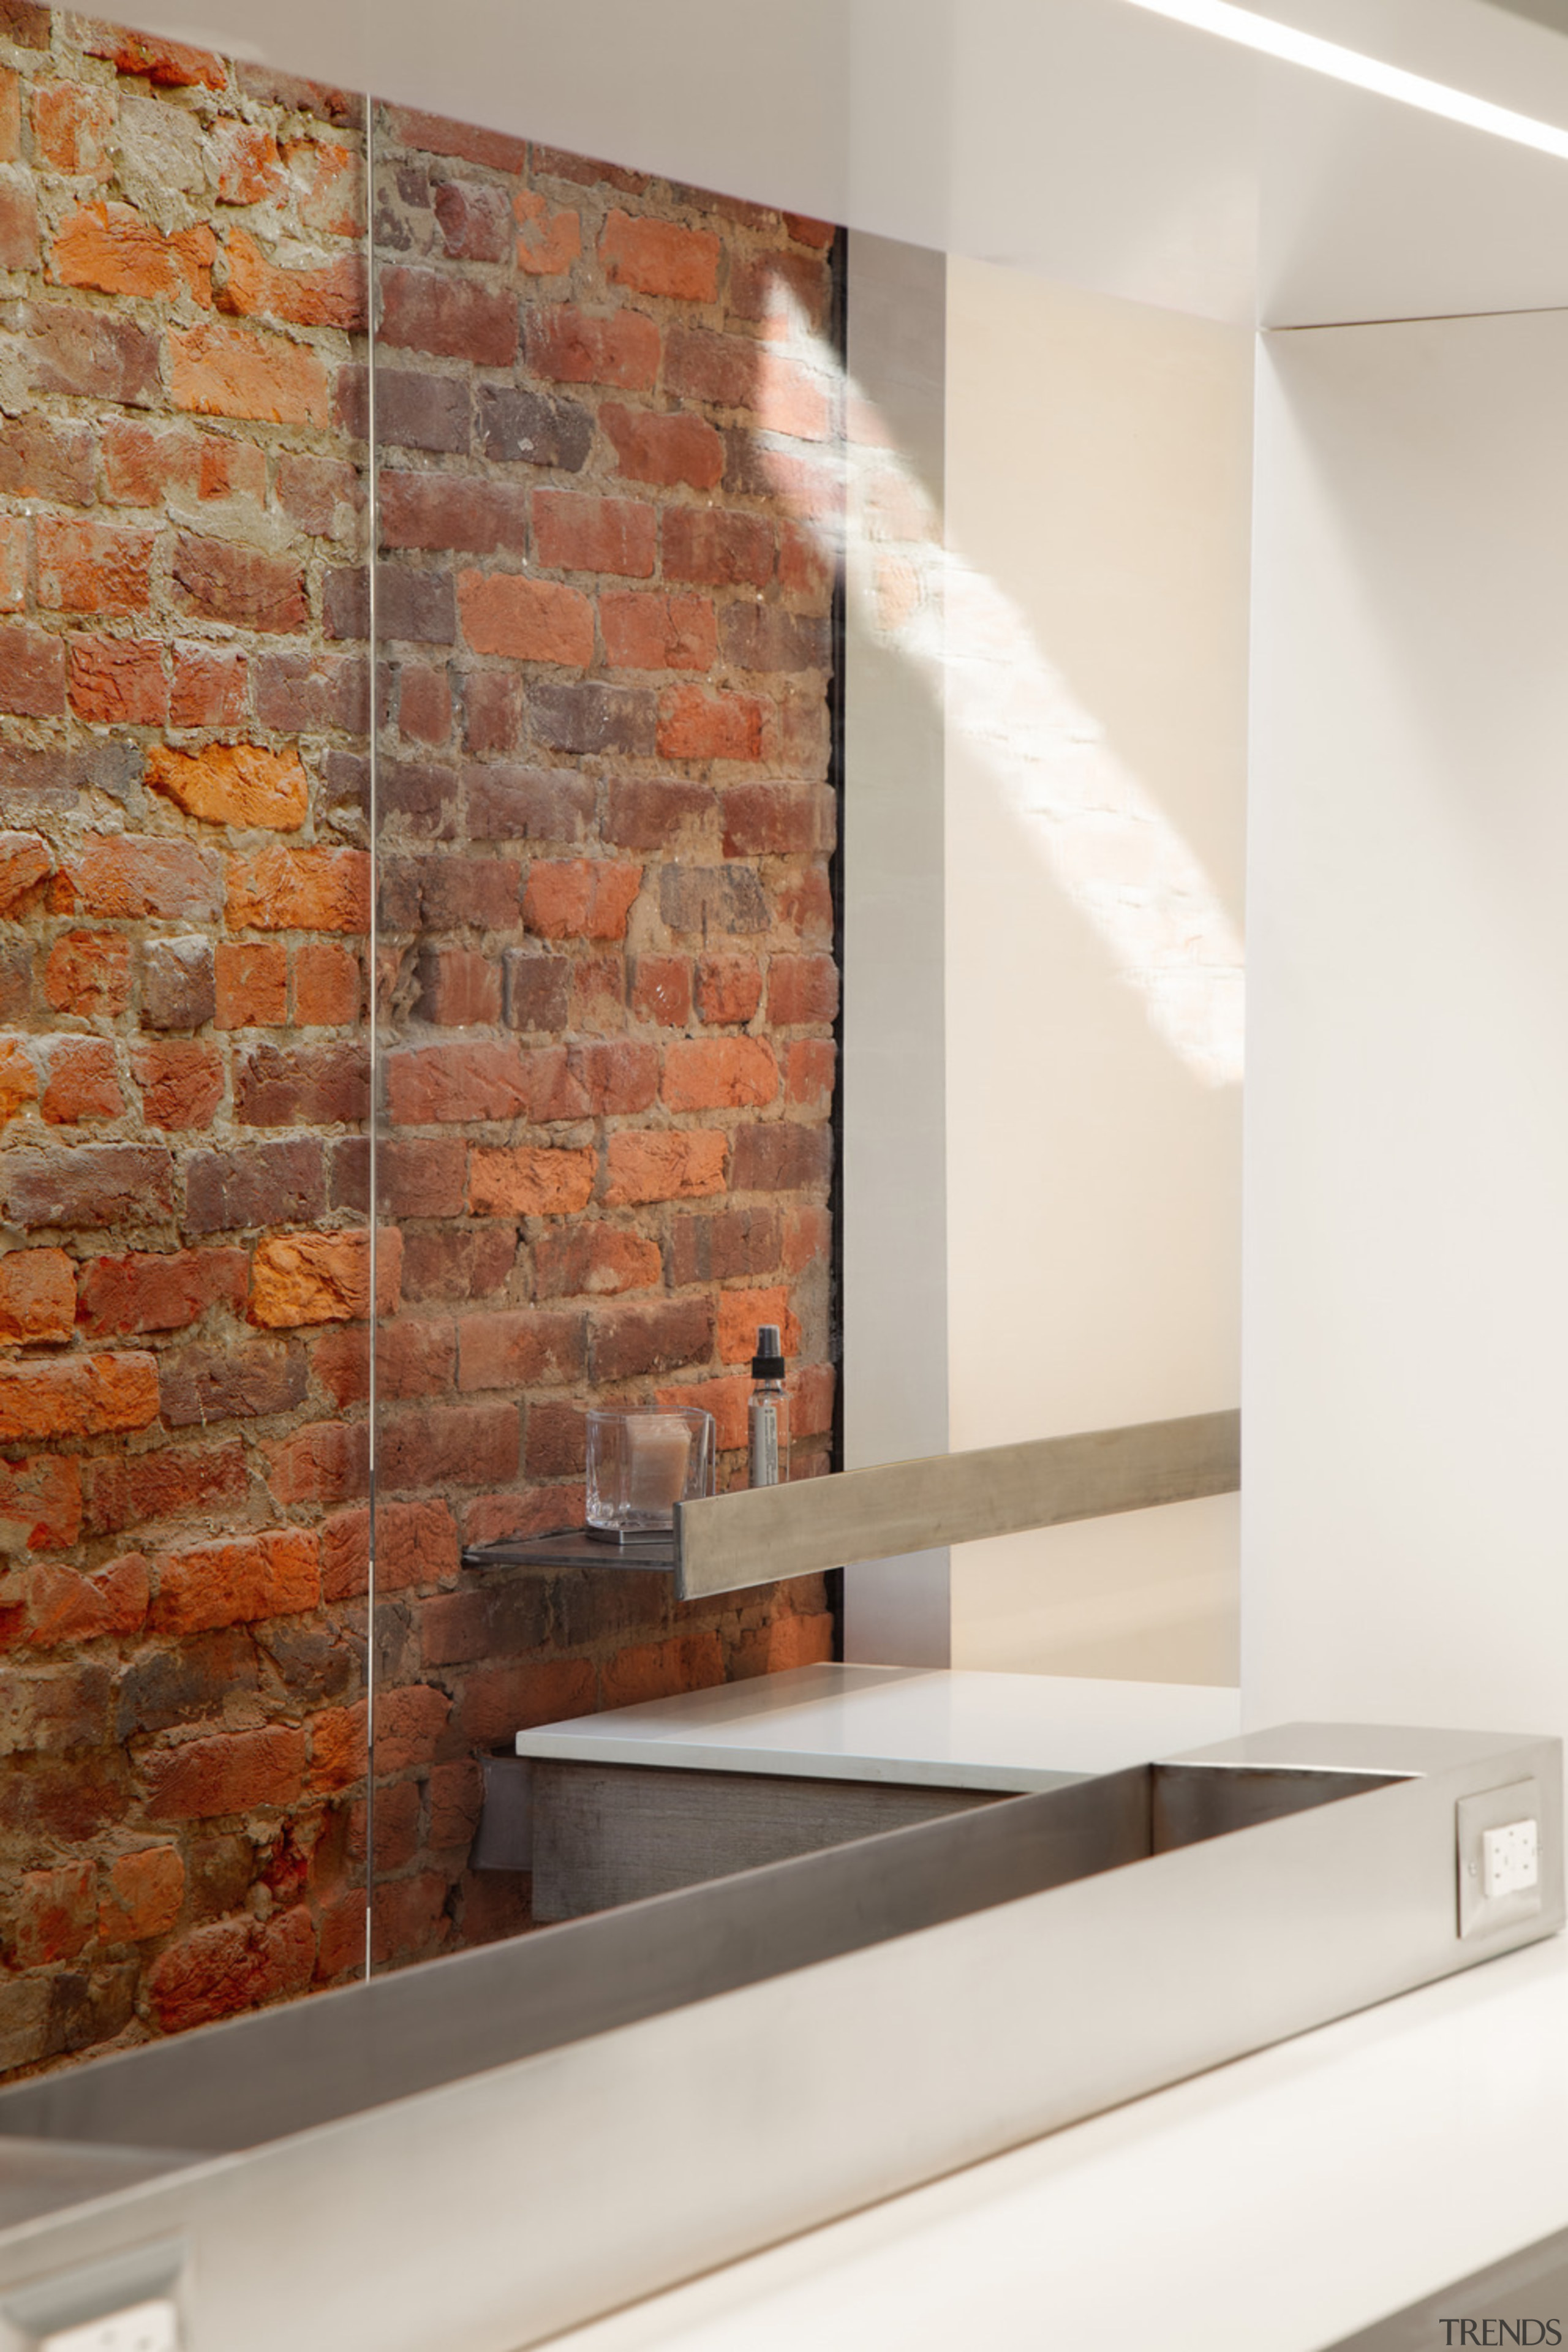 In the kitchen's opening, a low-profile stainless steel